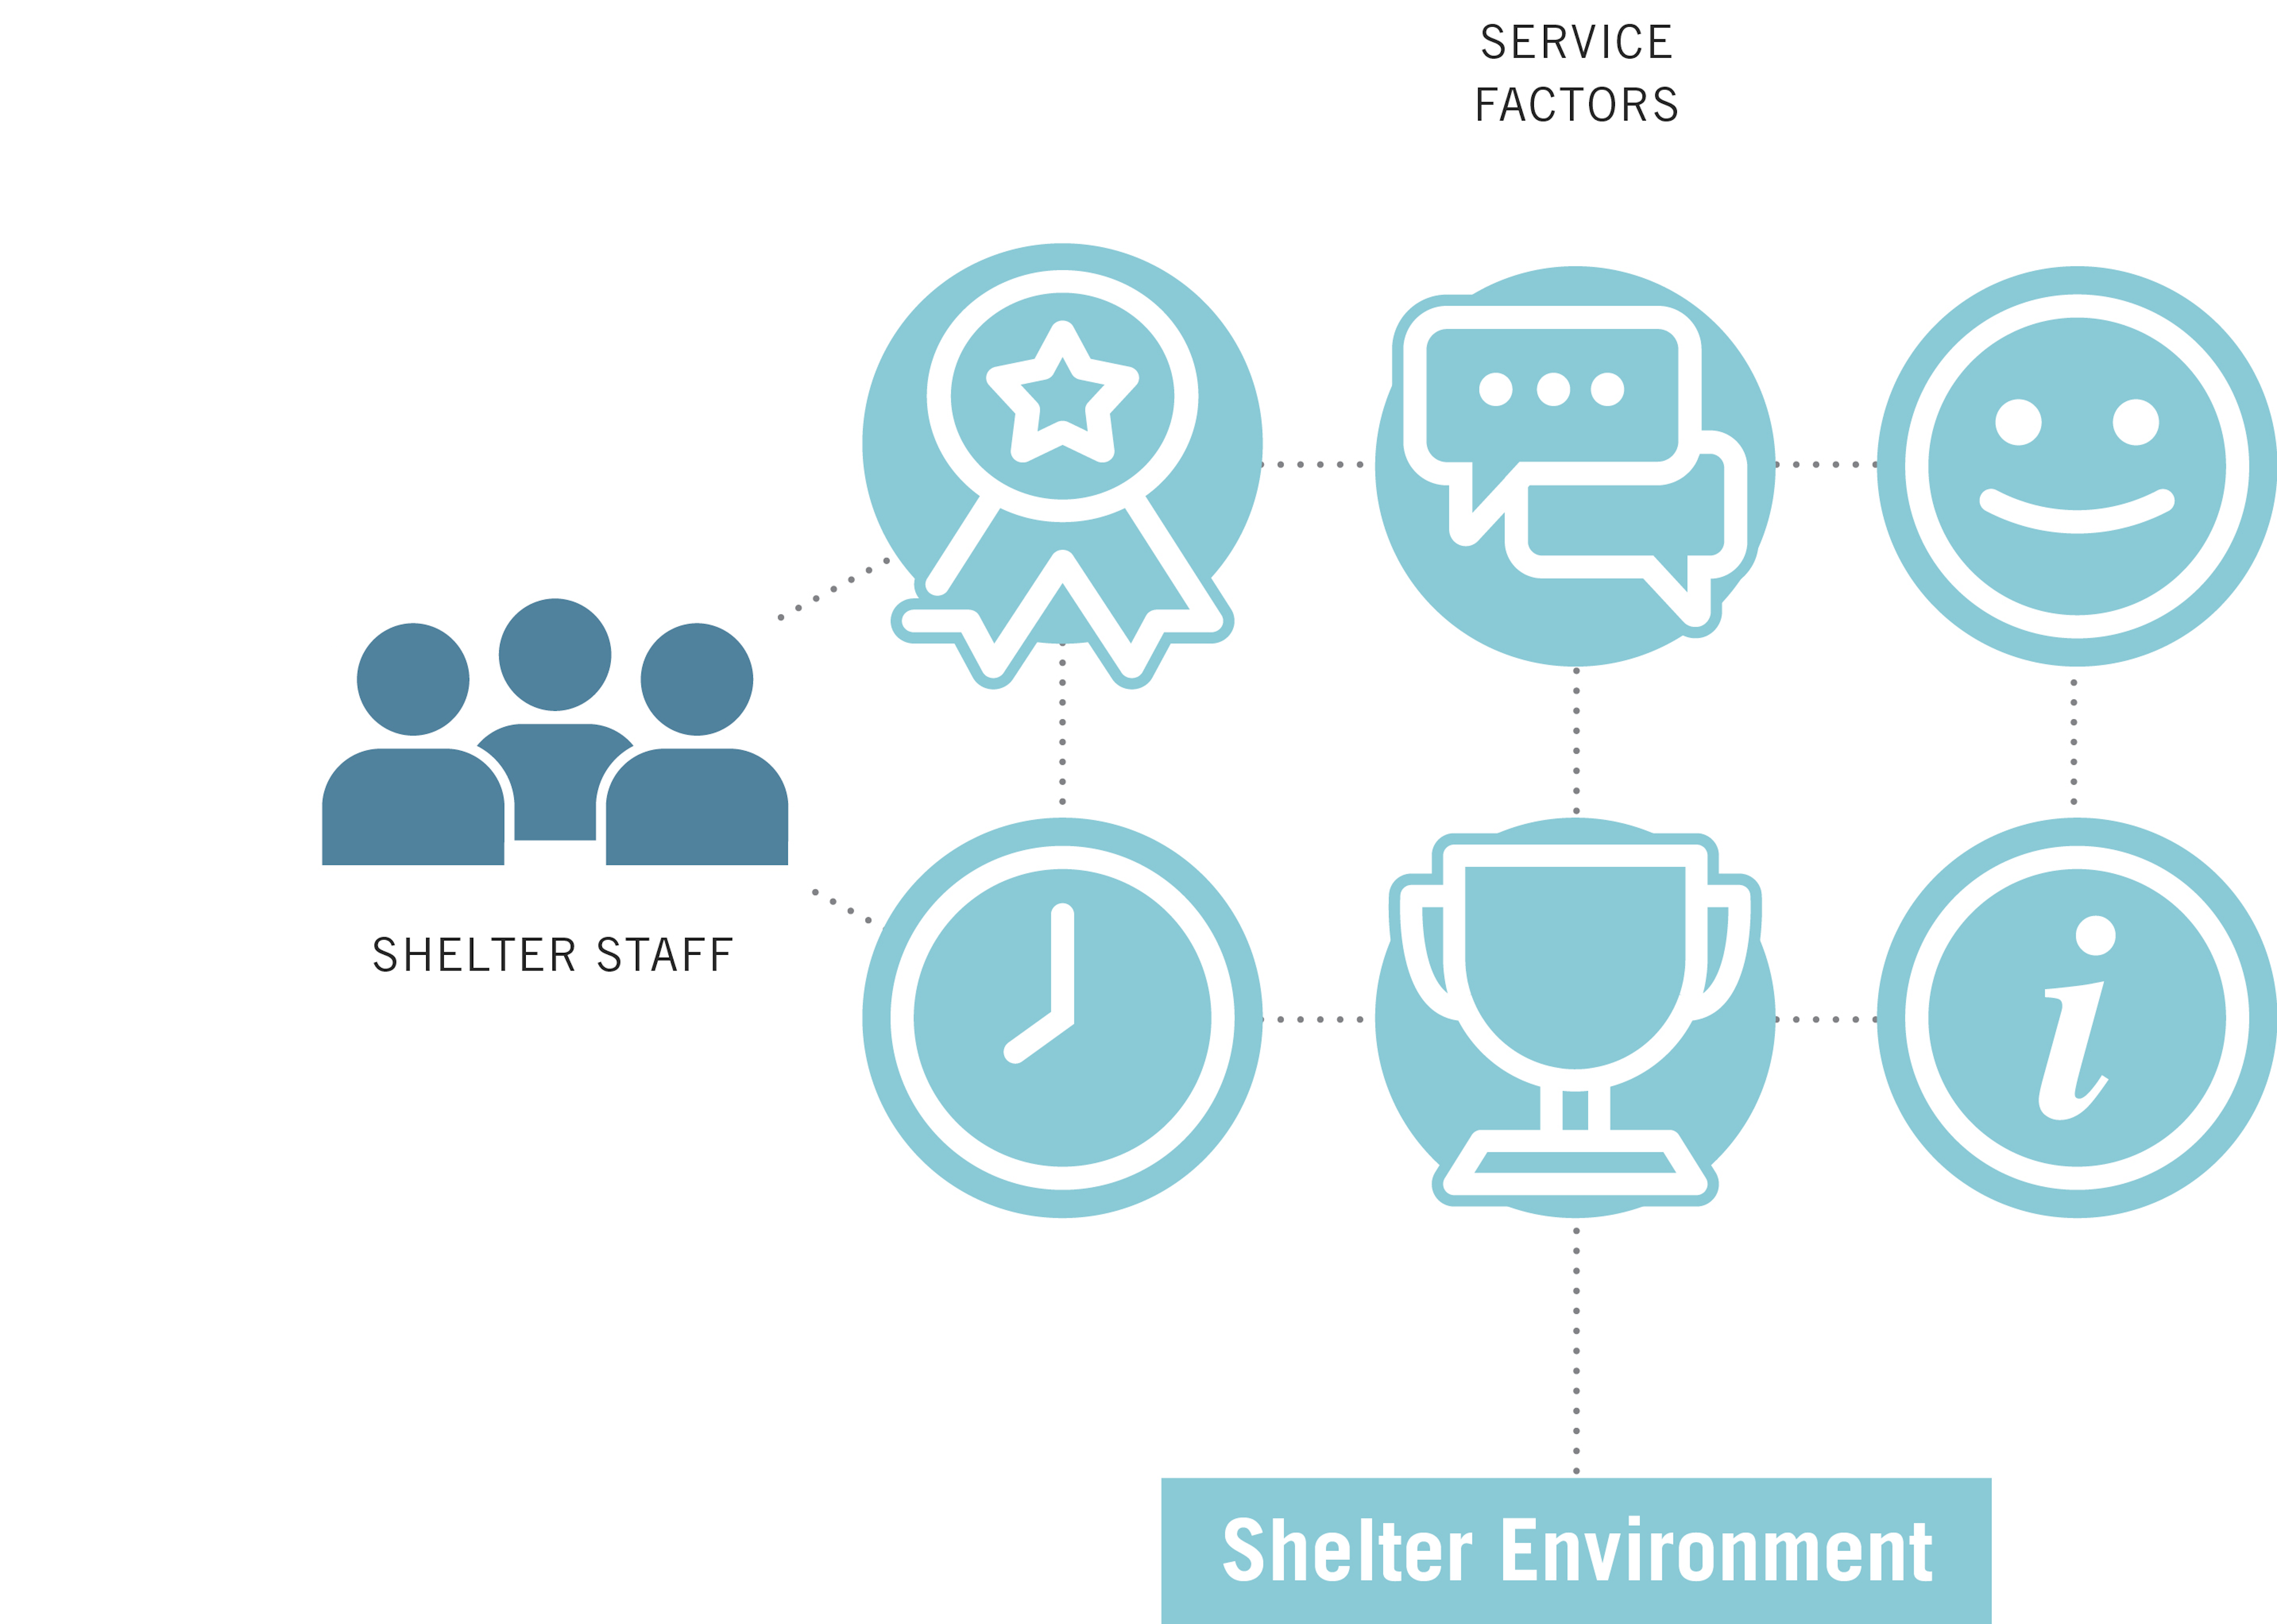 Shelter staff should build relationships and set expectations to create a better shelter environment